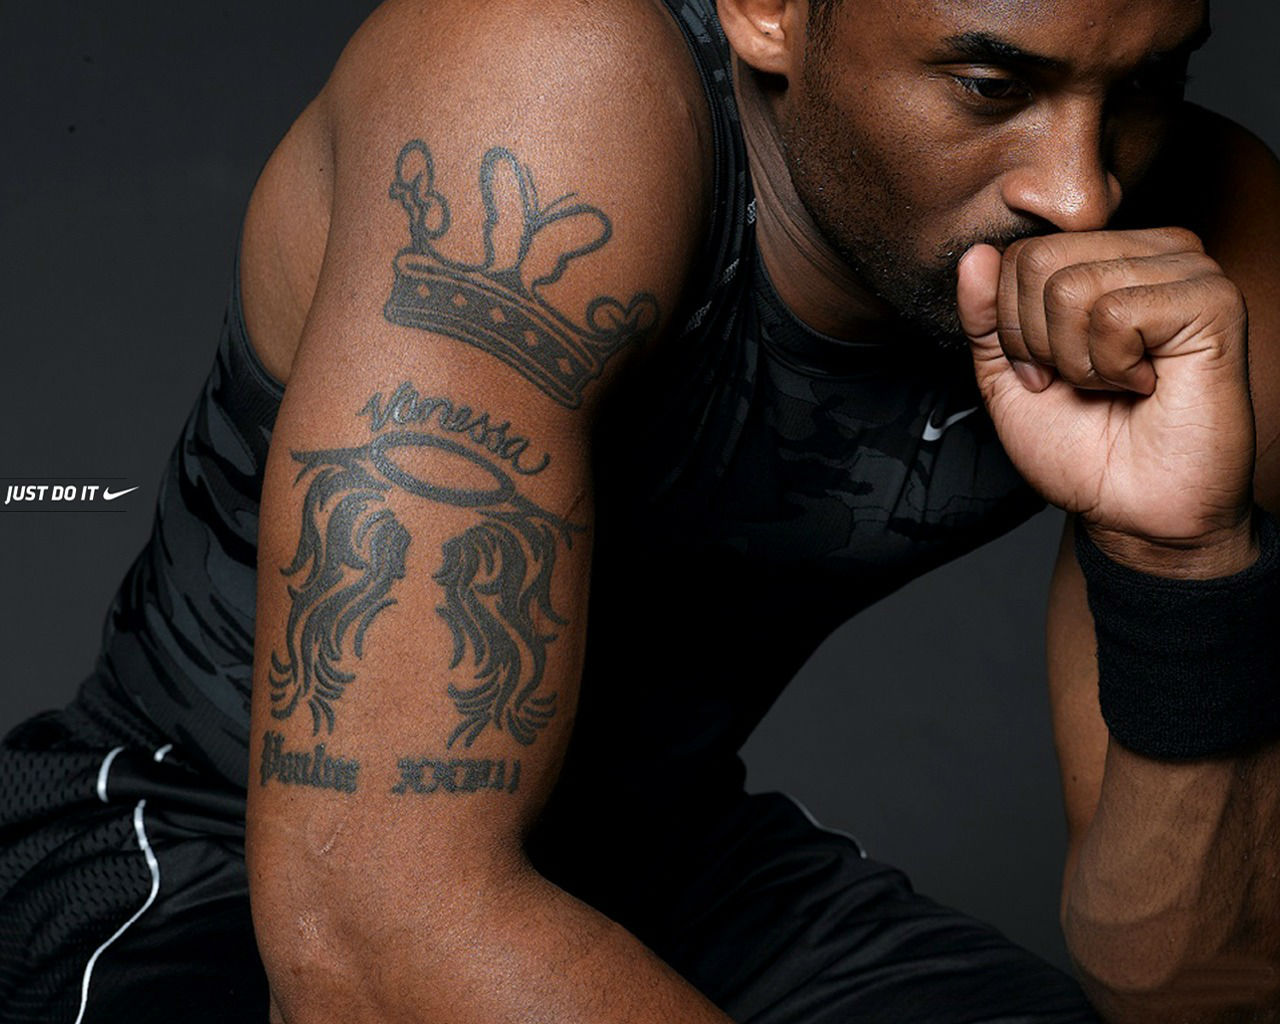 Awesome Arm Tattoo Design For Athlete Like Football Player Tattoos